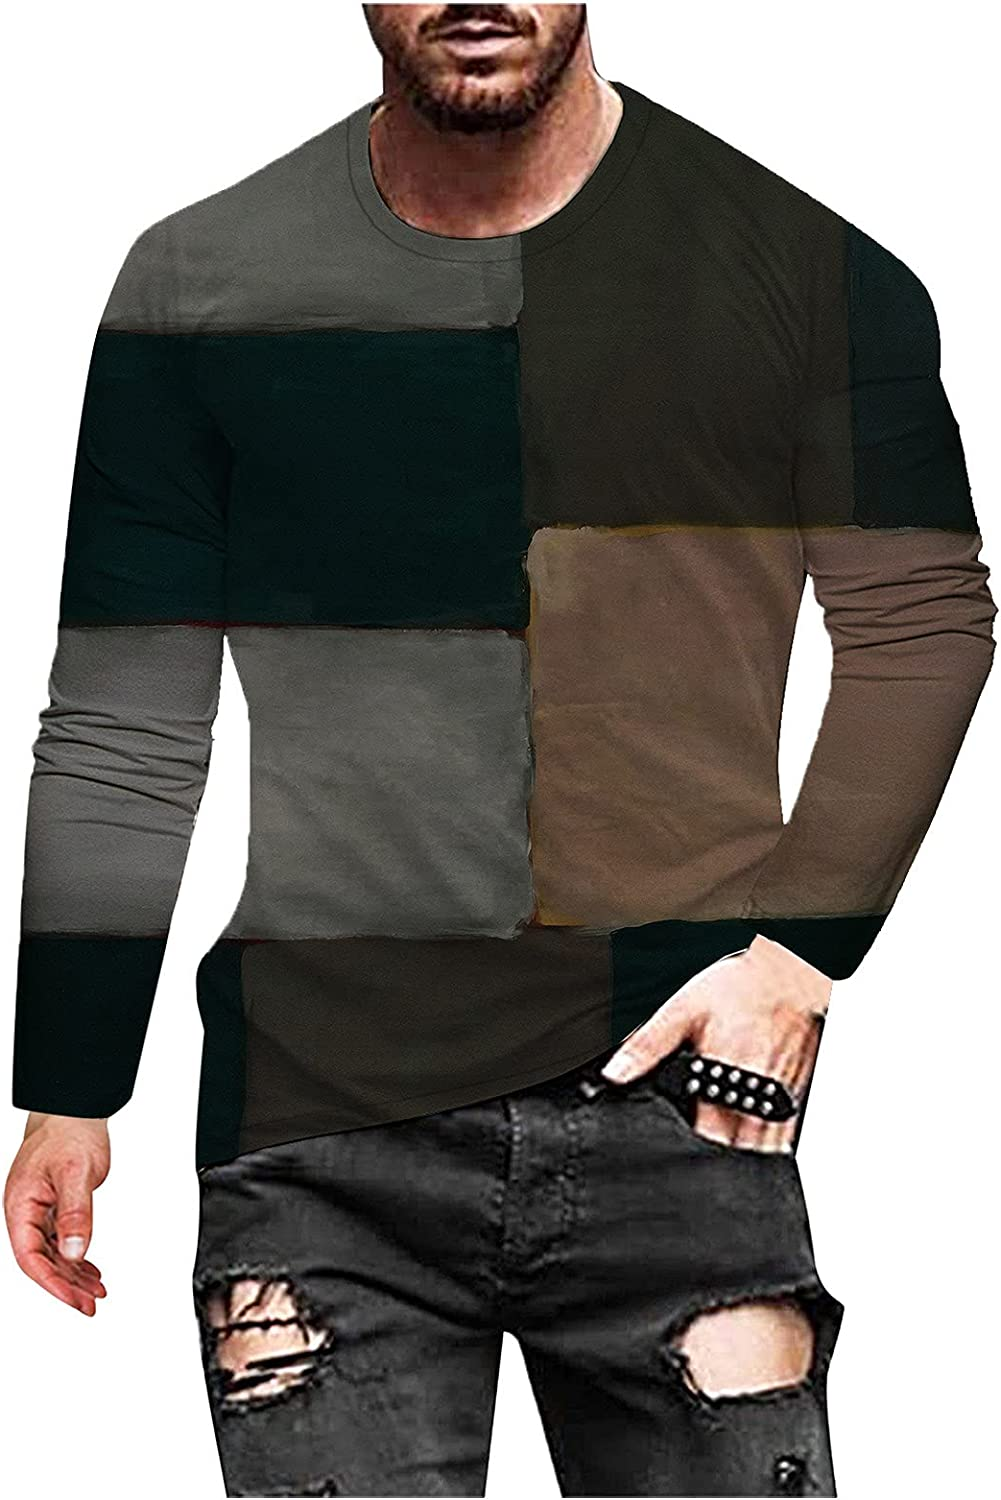 HONGJ Soldier Long Sleeve T-shirts for Mens, Fall Street Abstract Art Vintage Print Workout Athletics Crewneck Tee Tops